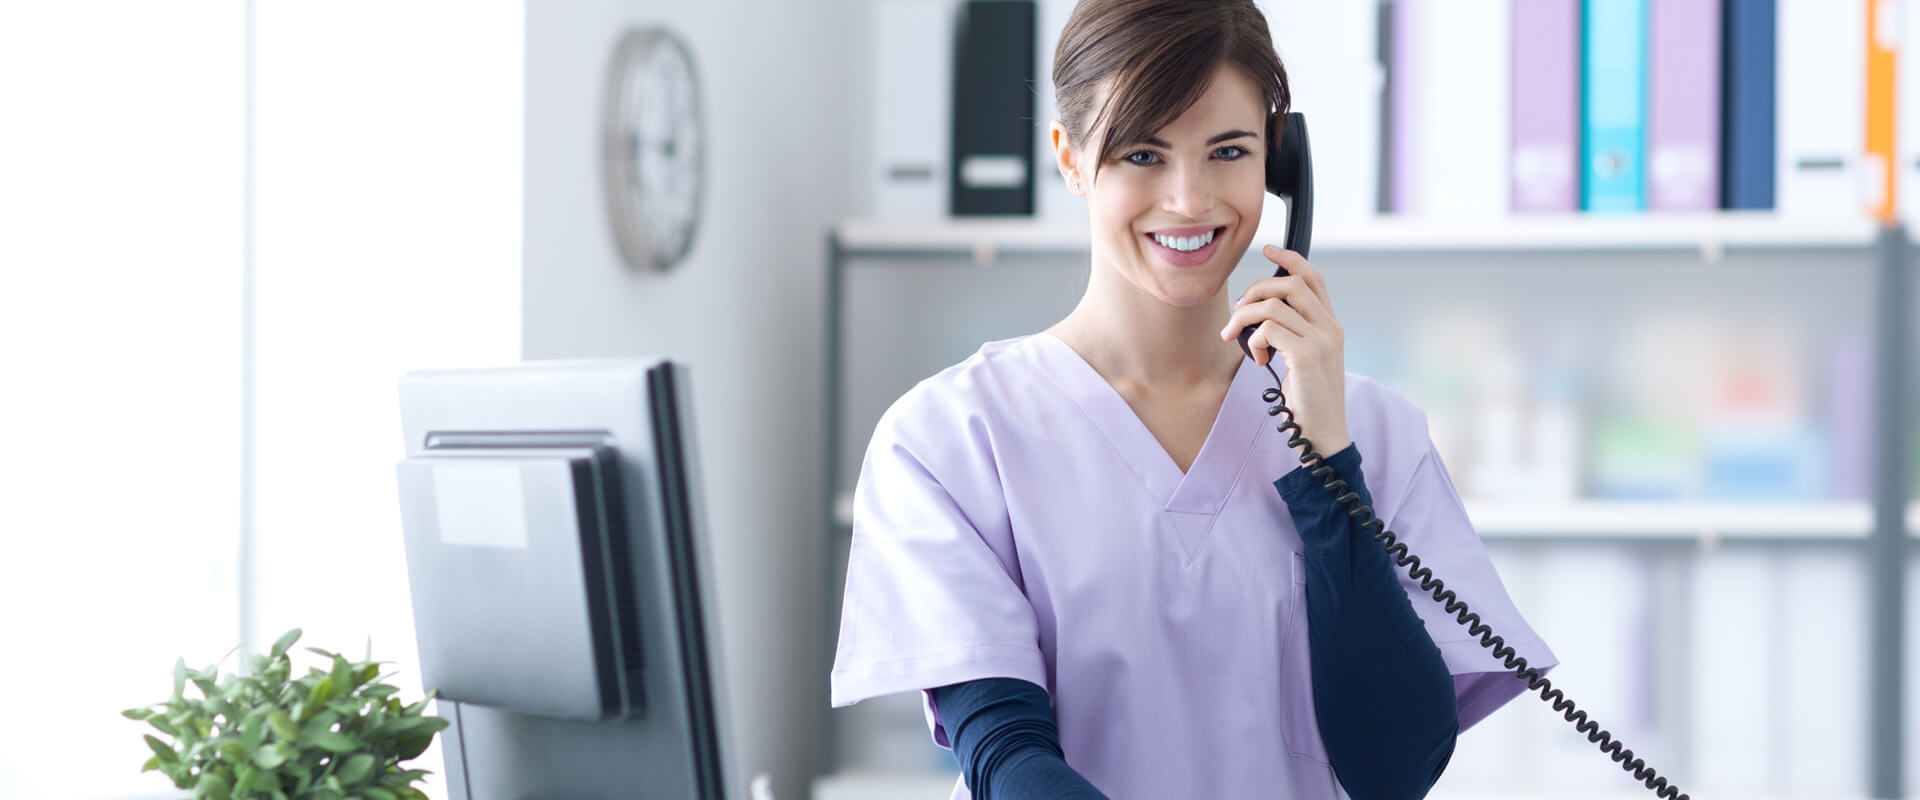 Receptionist at dental clinic answering phone call